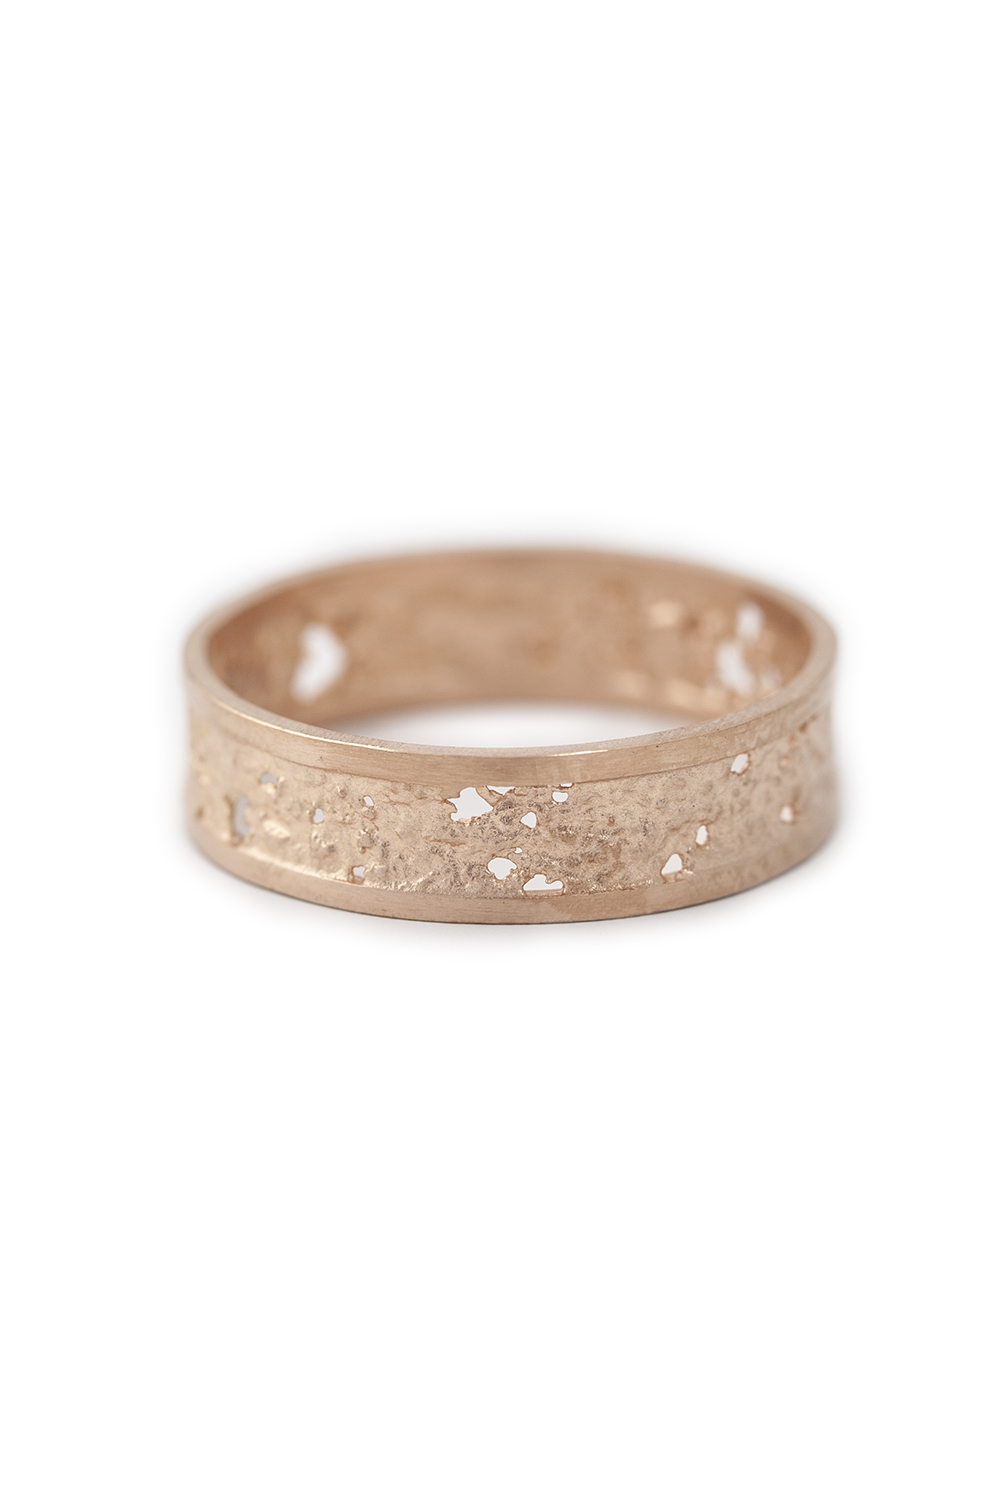 Raw Ring in rose gold, £1260